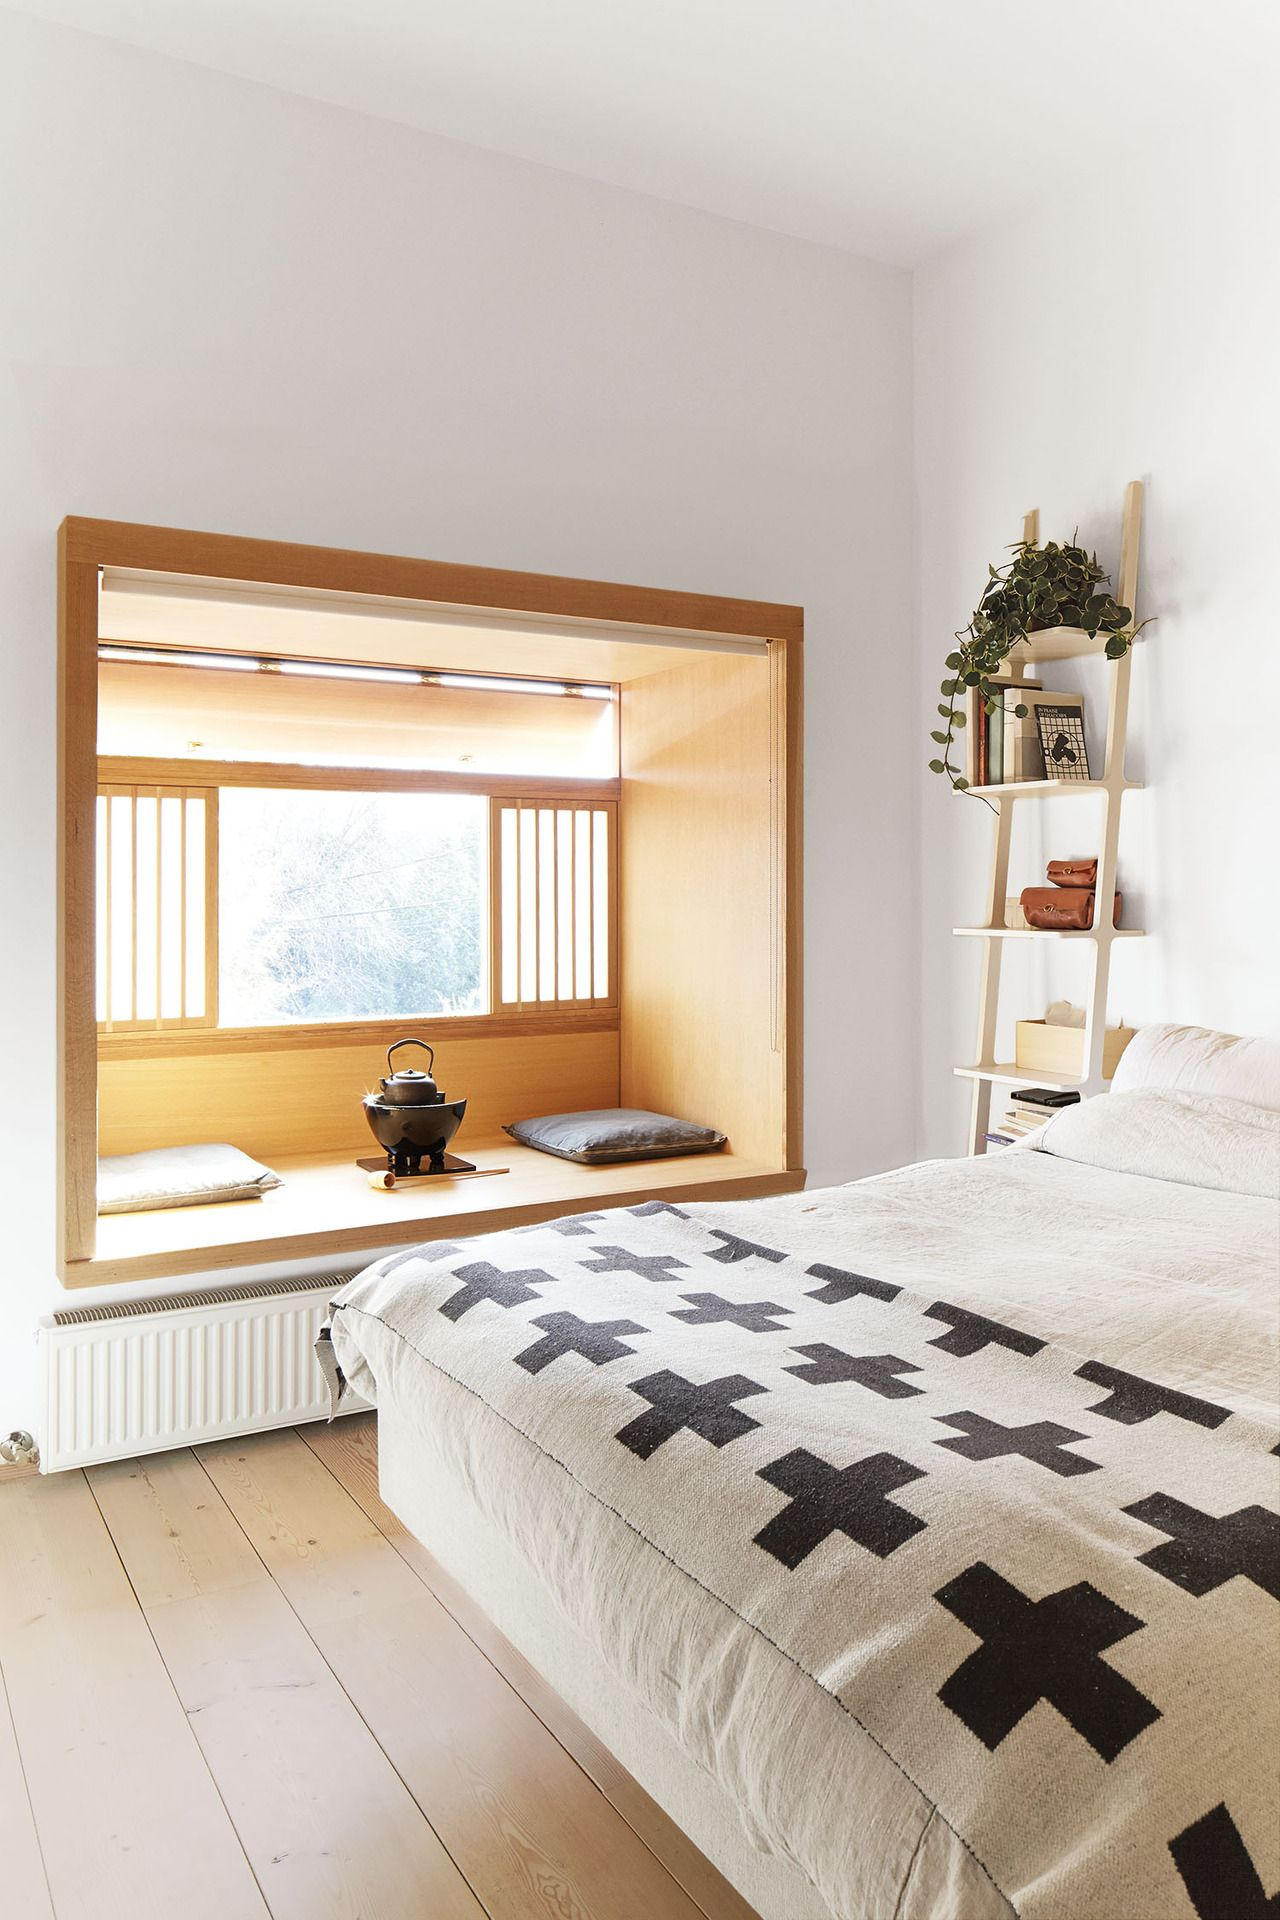 3 window bedroom  บาน  pinterest  window bedrooms and interiors